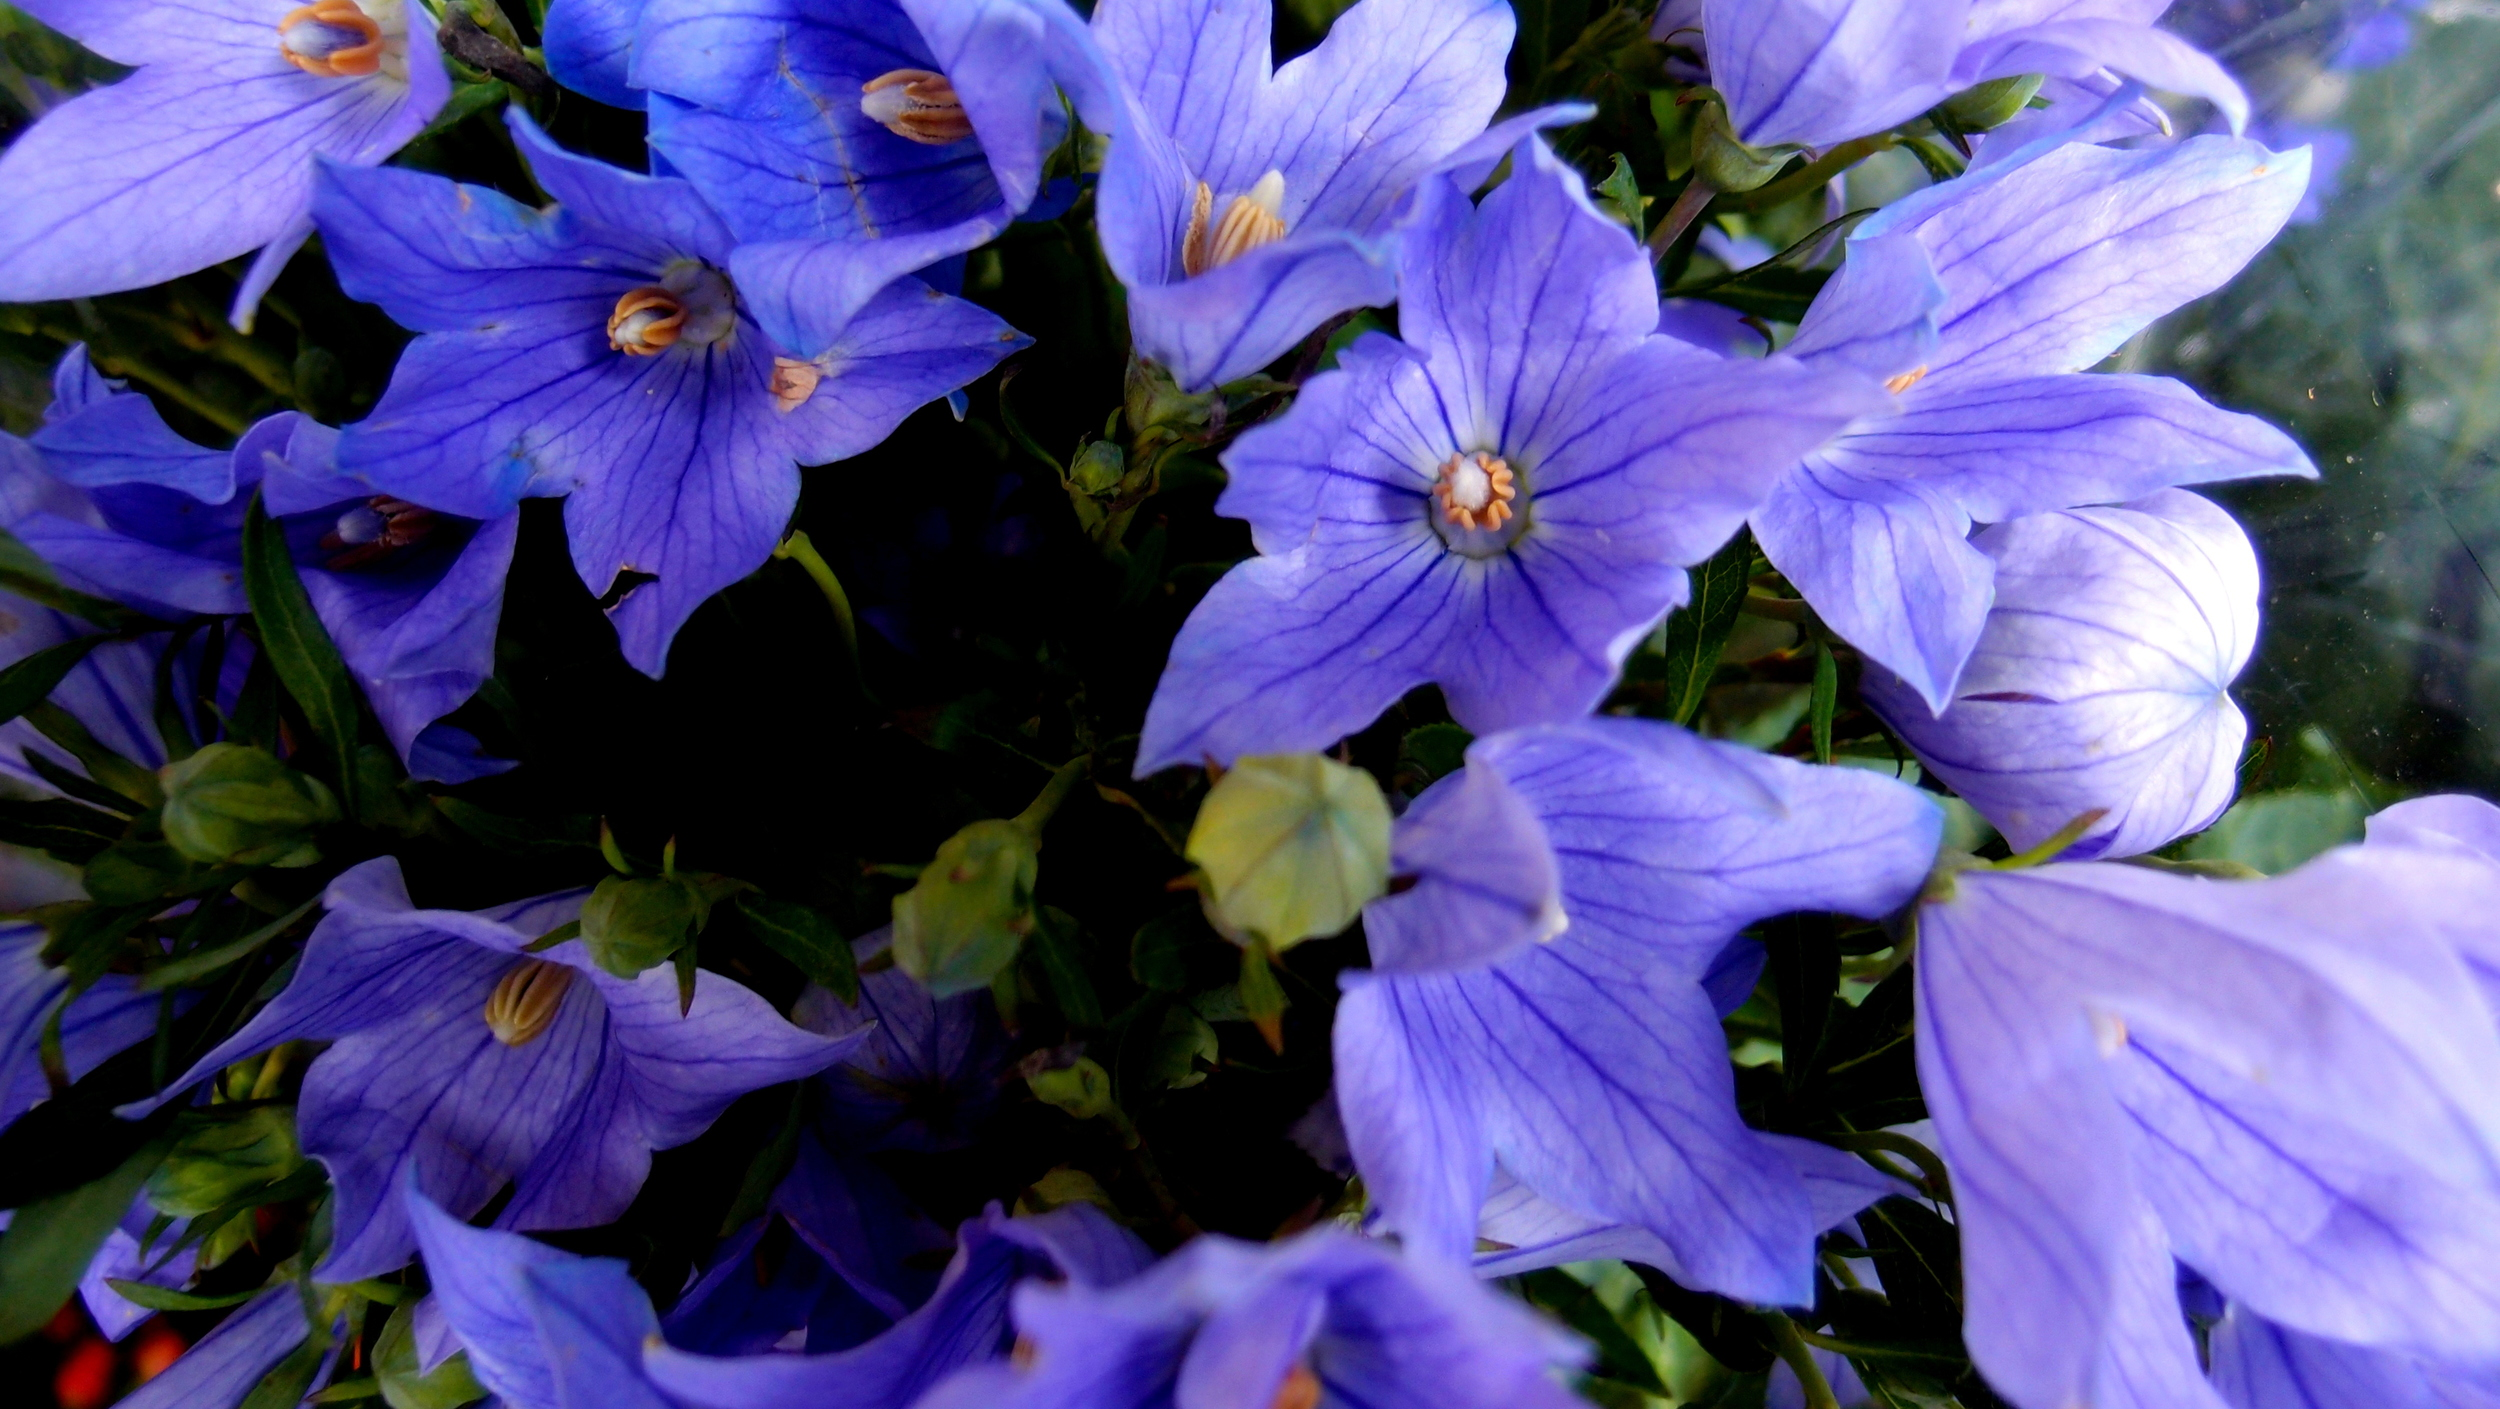 A lovely bunch of flowers (yeah, I know.. I'm scraping the barrel on this one)